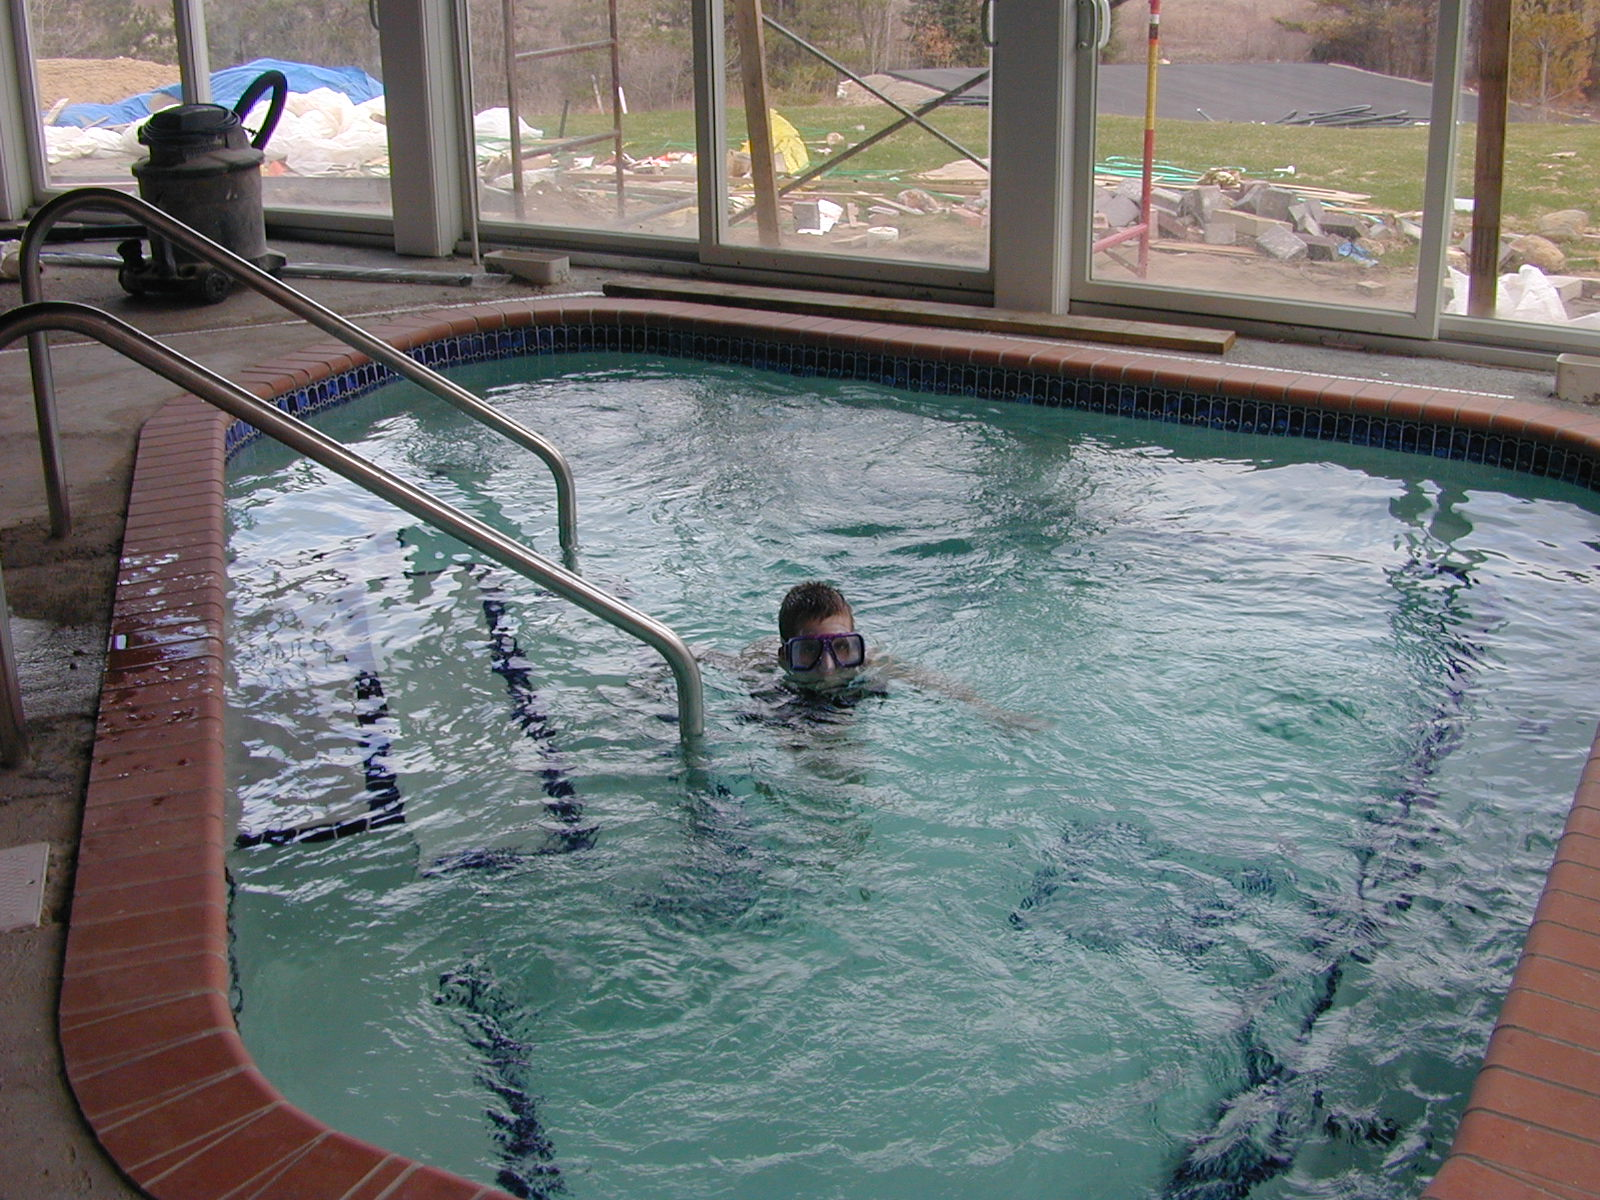 Peter in the hot tub in IGH, circa 2001